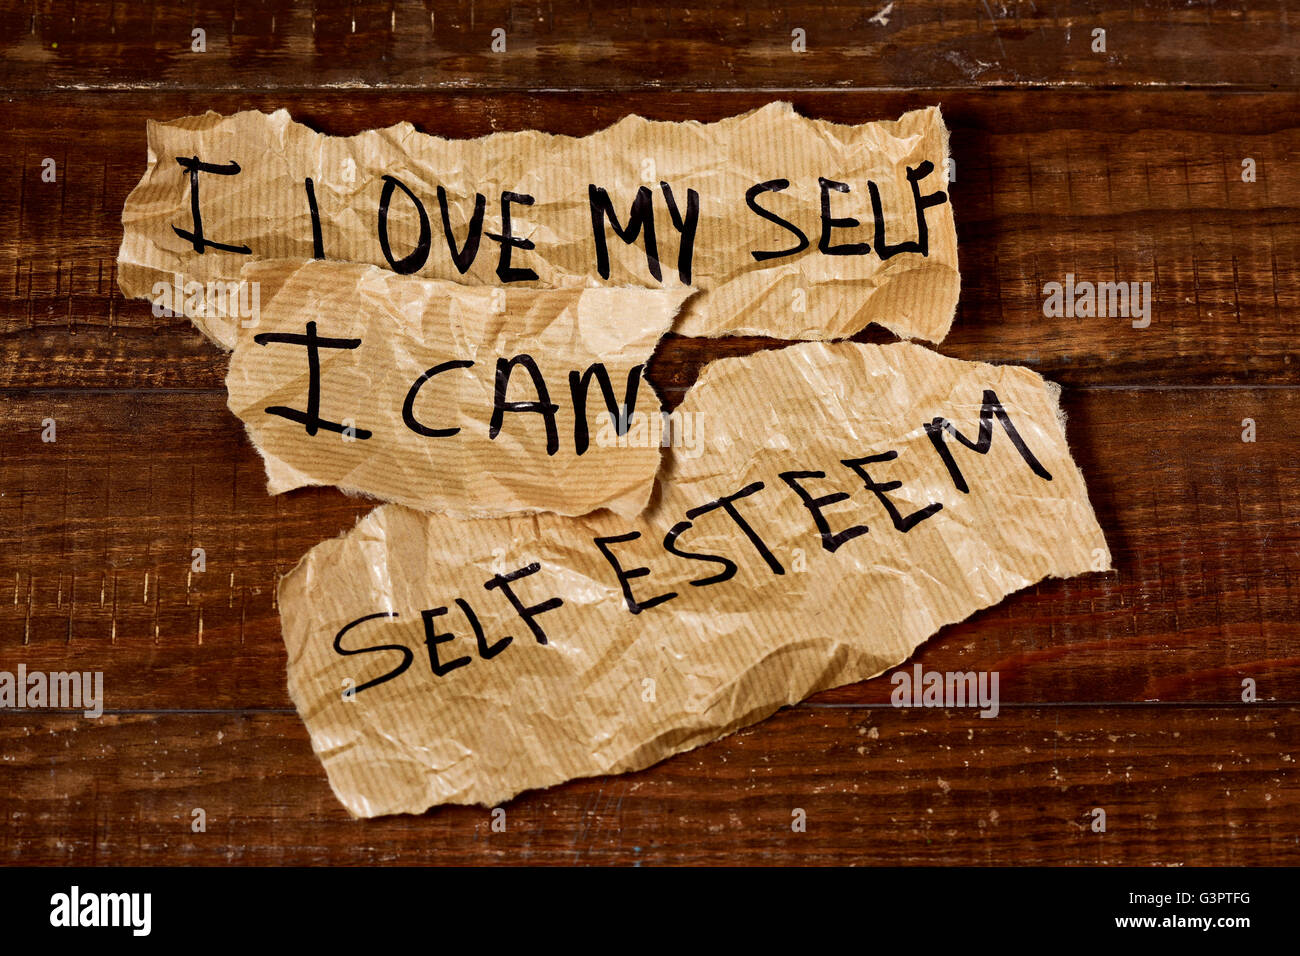 the text I love myself, I can and self esteem written in some pieces of paper, placed on a rustic wooden surface - Stock Image